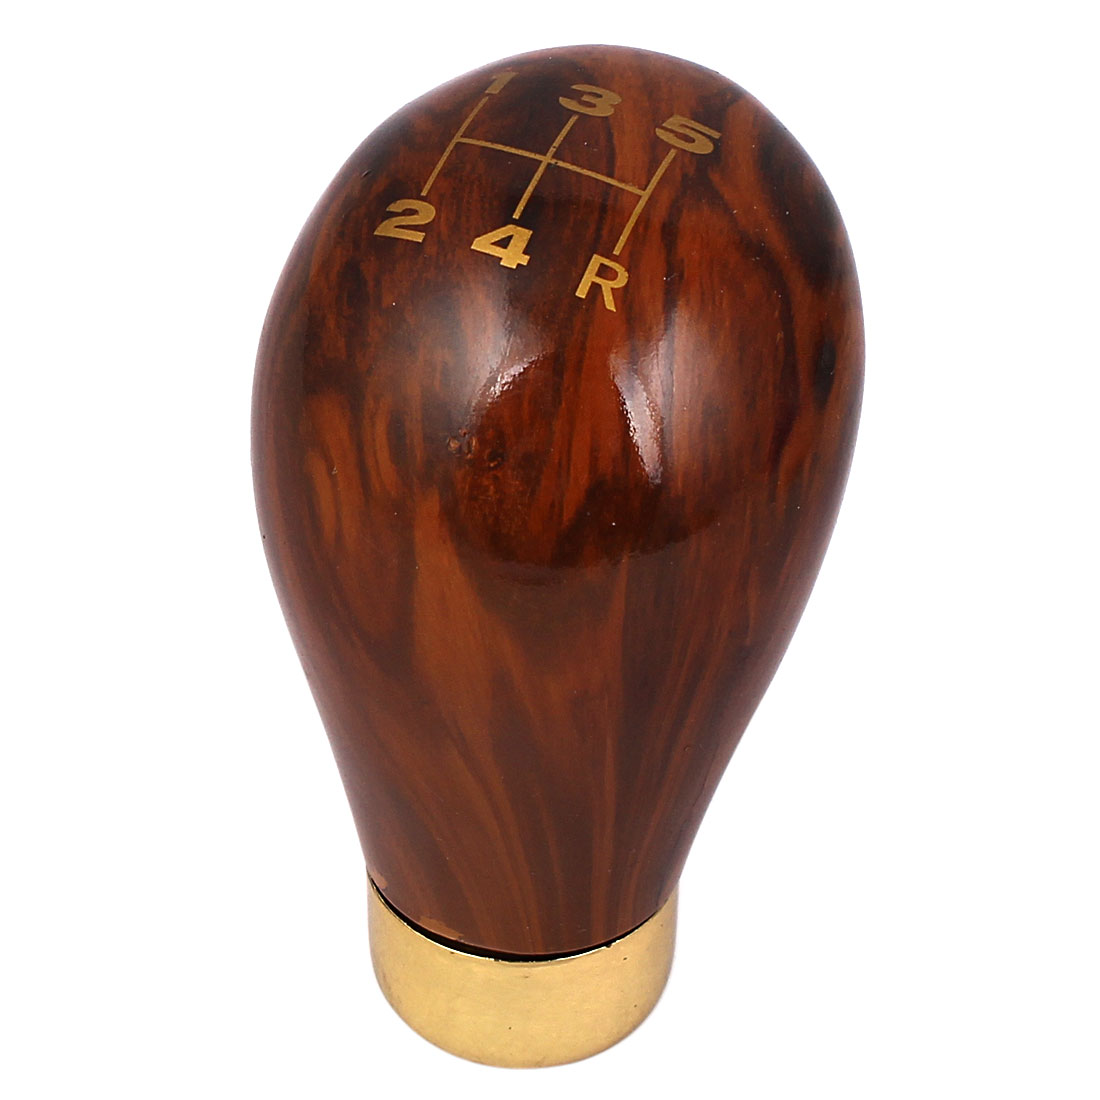 Shift Lever Knob for Manual Transmission Cars